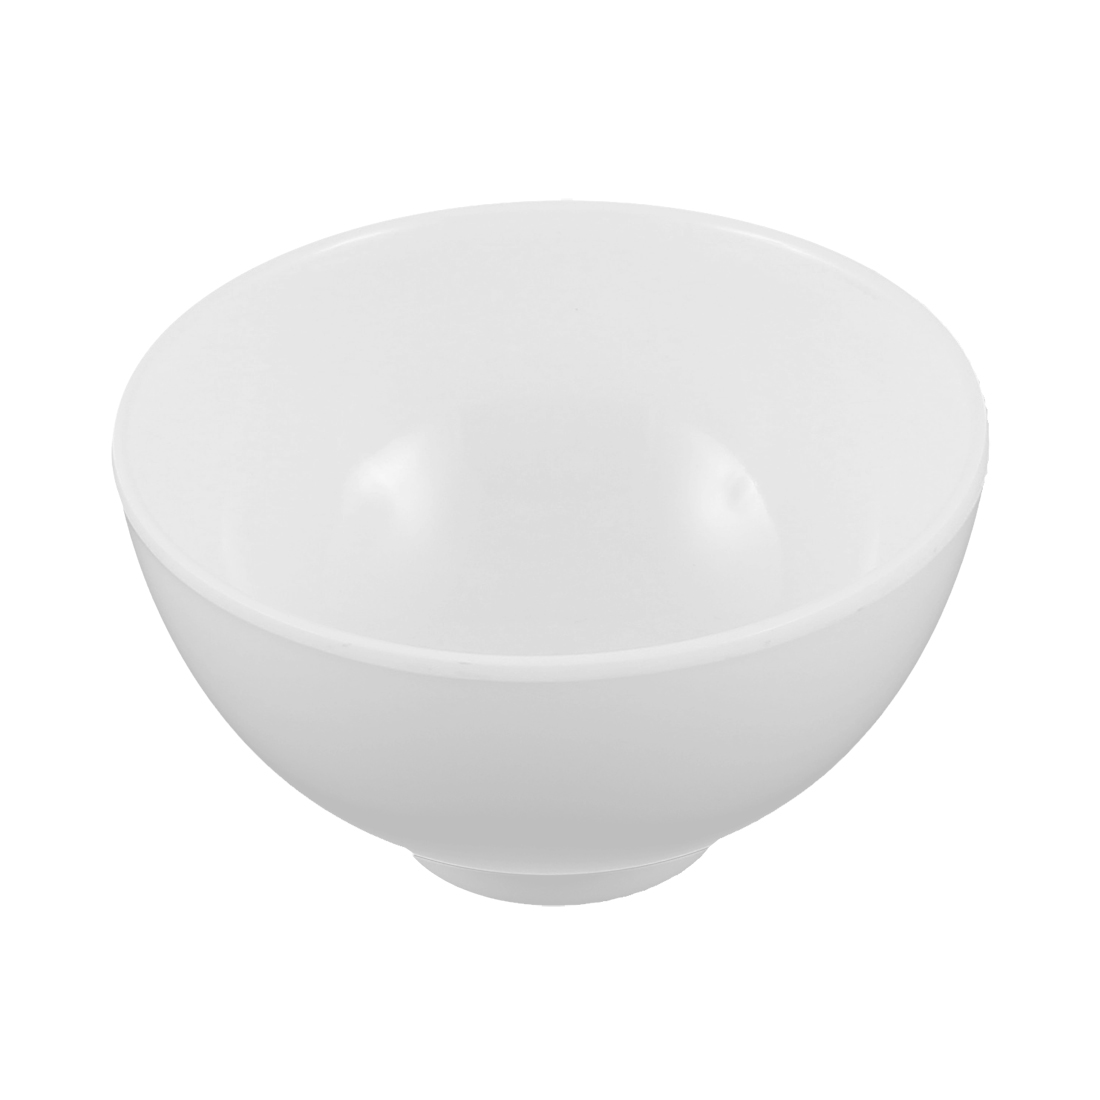 "Home Kitchen Soup Noodle Salad Rice Bowl White 4"" Dia"